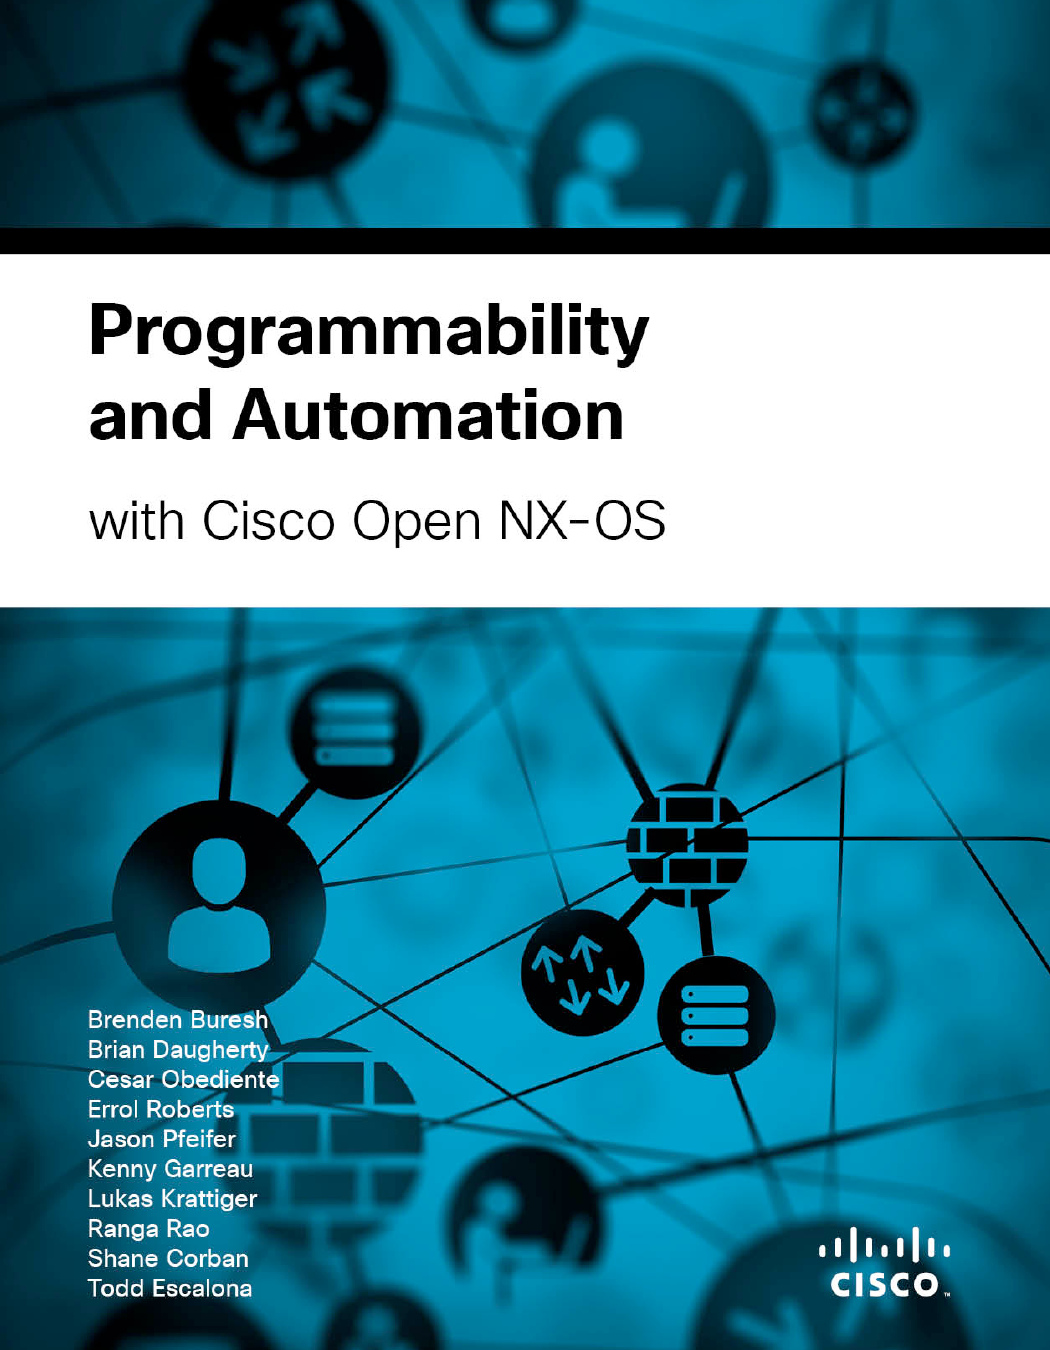 Programmability and Automation with Cisco Open NX-OS